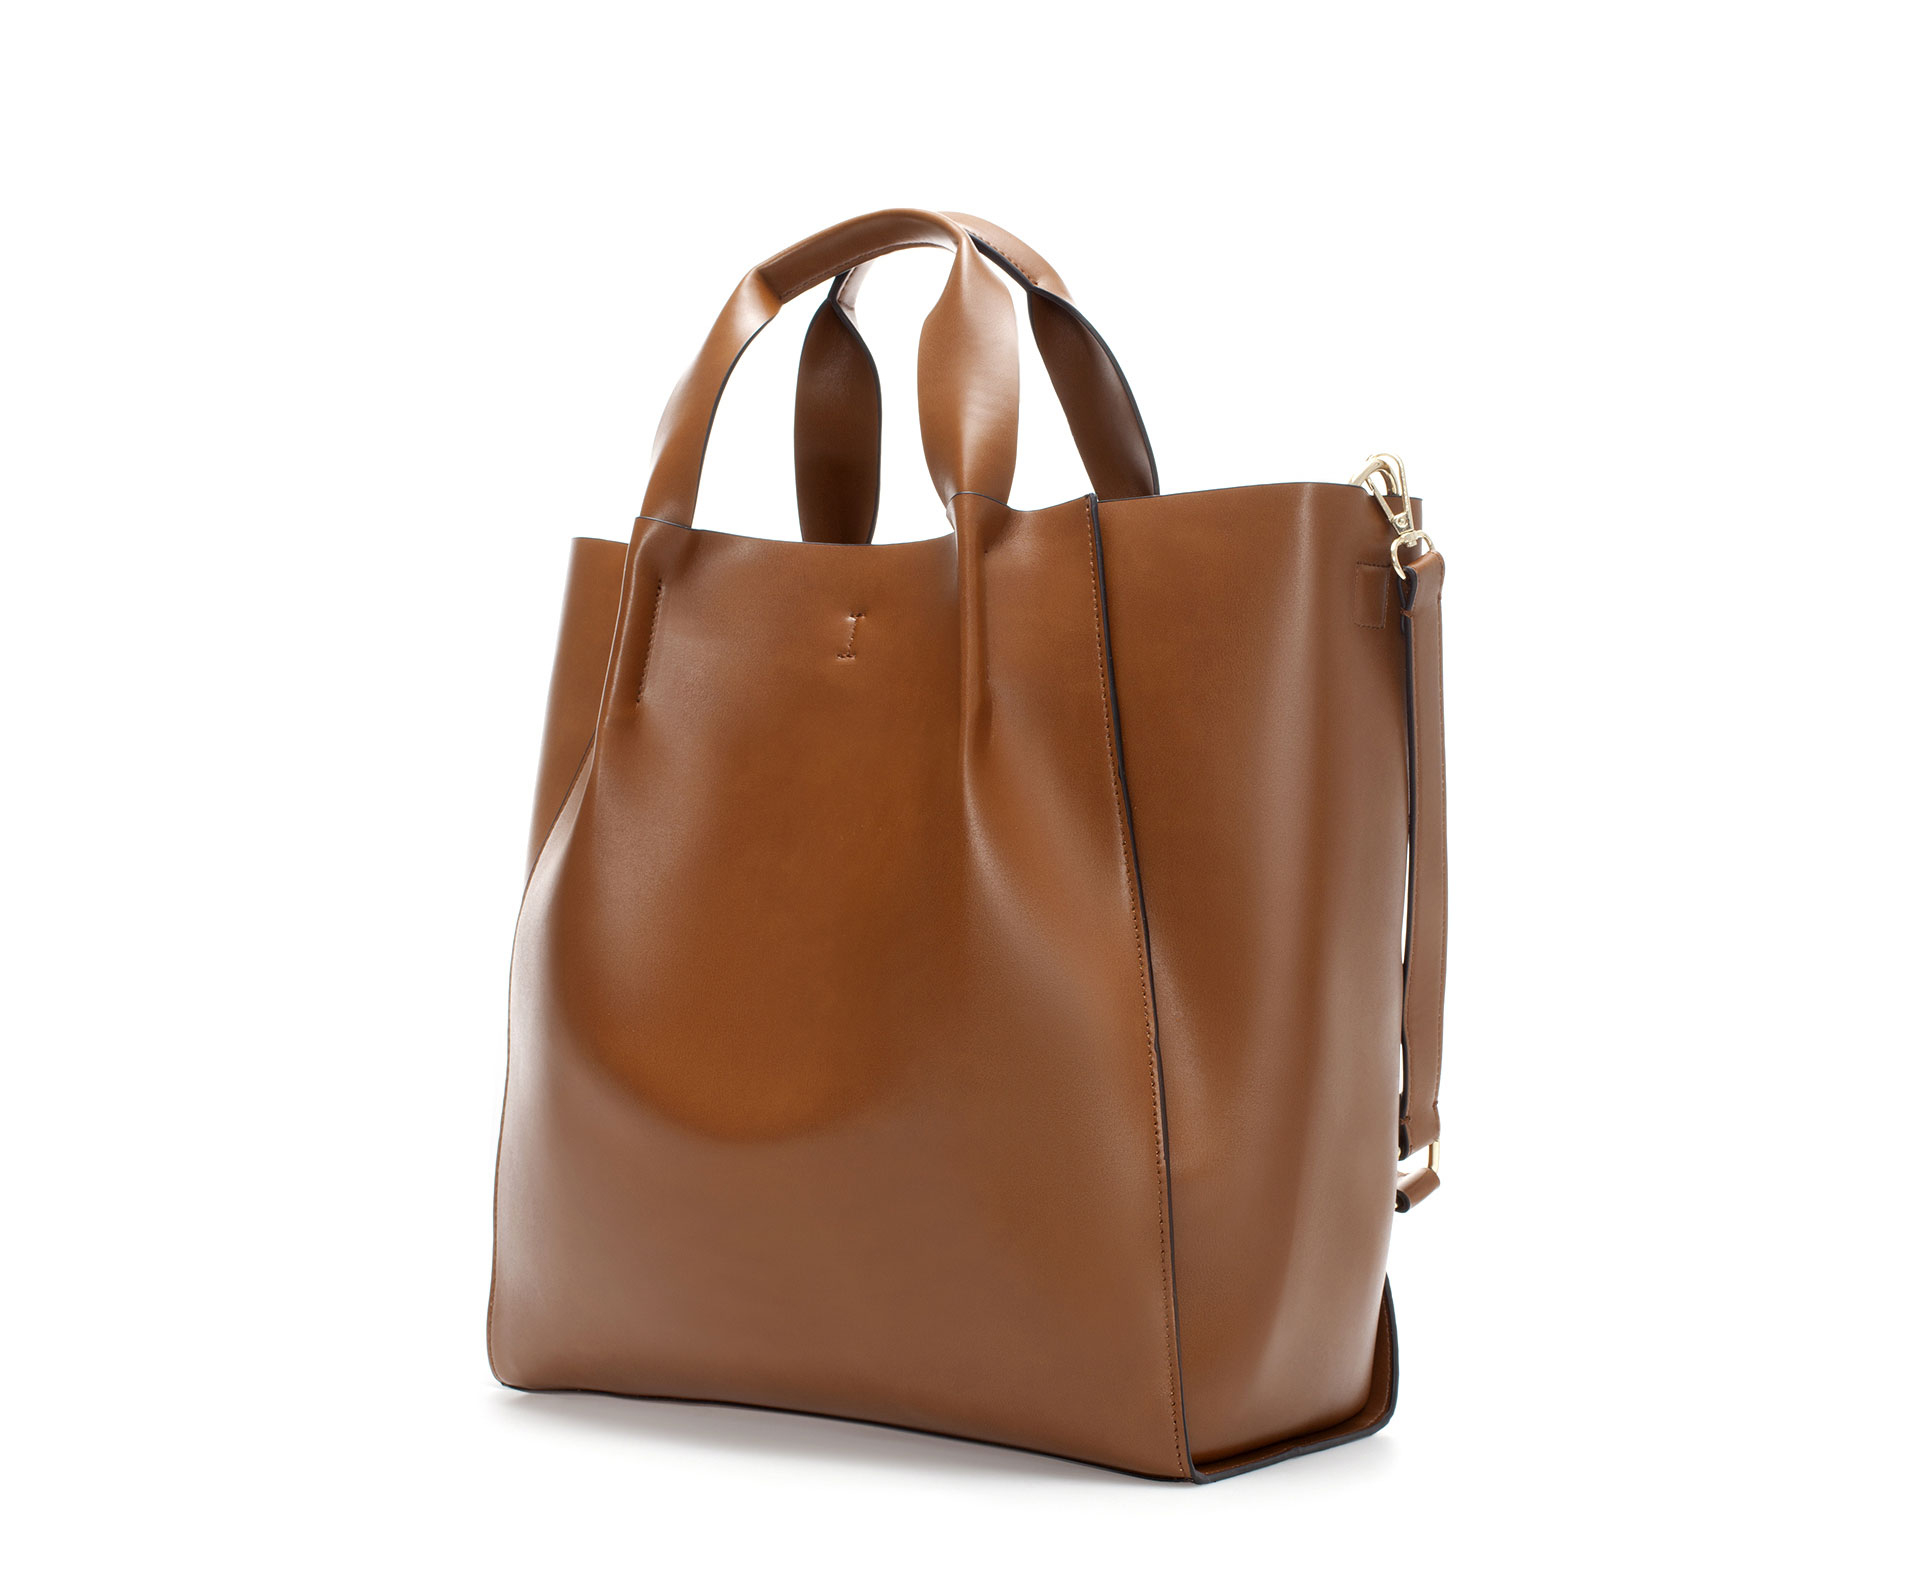 Zara Shopper Bag in Brown | Lyst